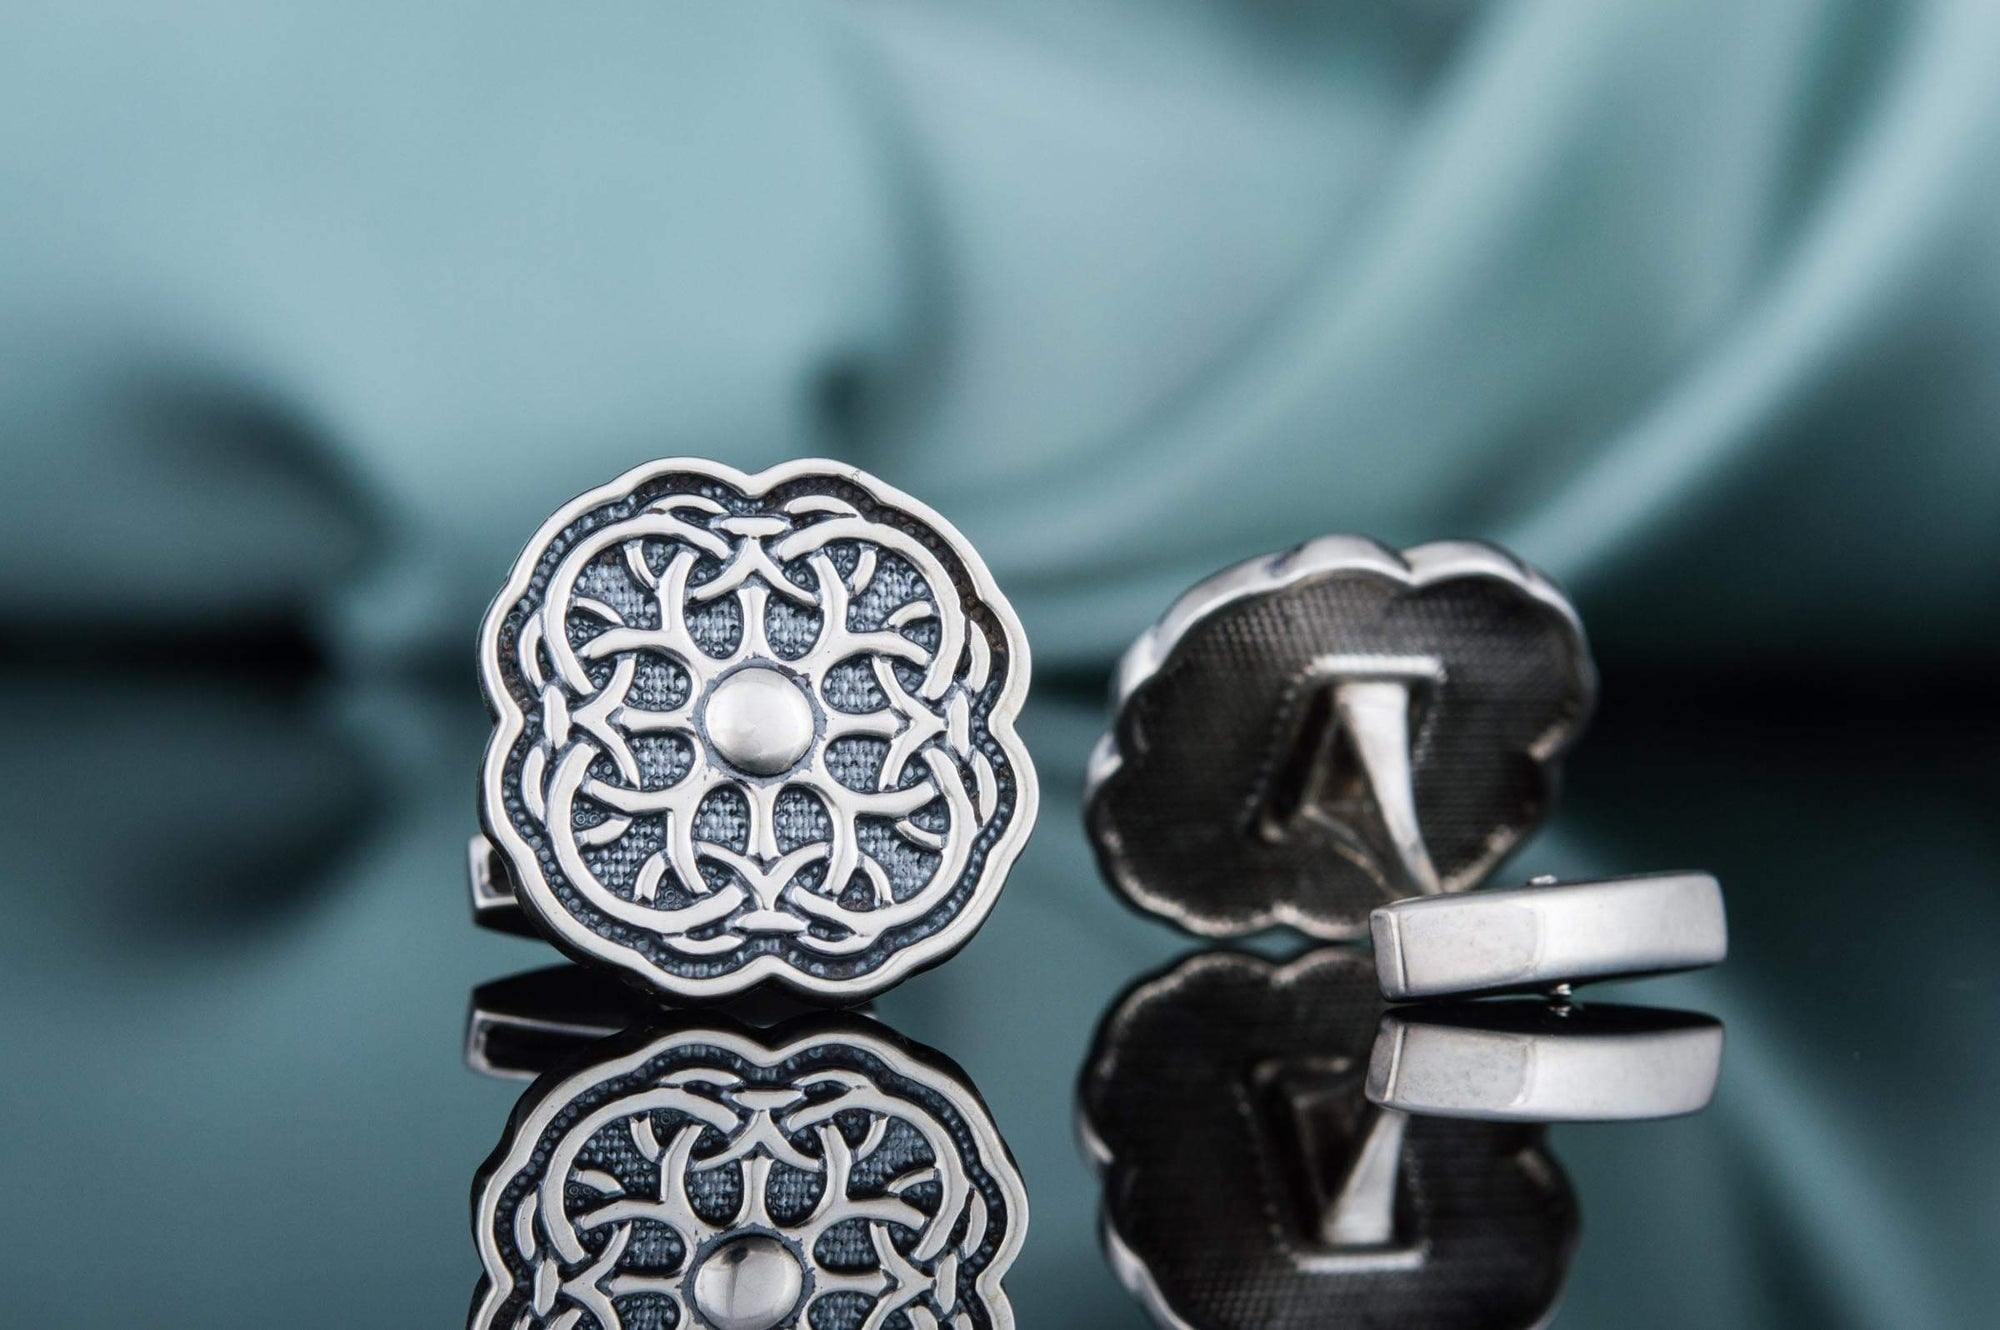 Cufflinks Celtic Knot Ornament Sterling Silver Handmade Cufflinks Ancient Treasures Ancientreasures Viking Odin Thor Mjolnir Celtic Ancient Egypt Norse Norse Mythology